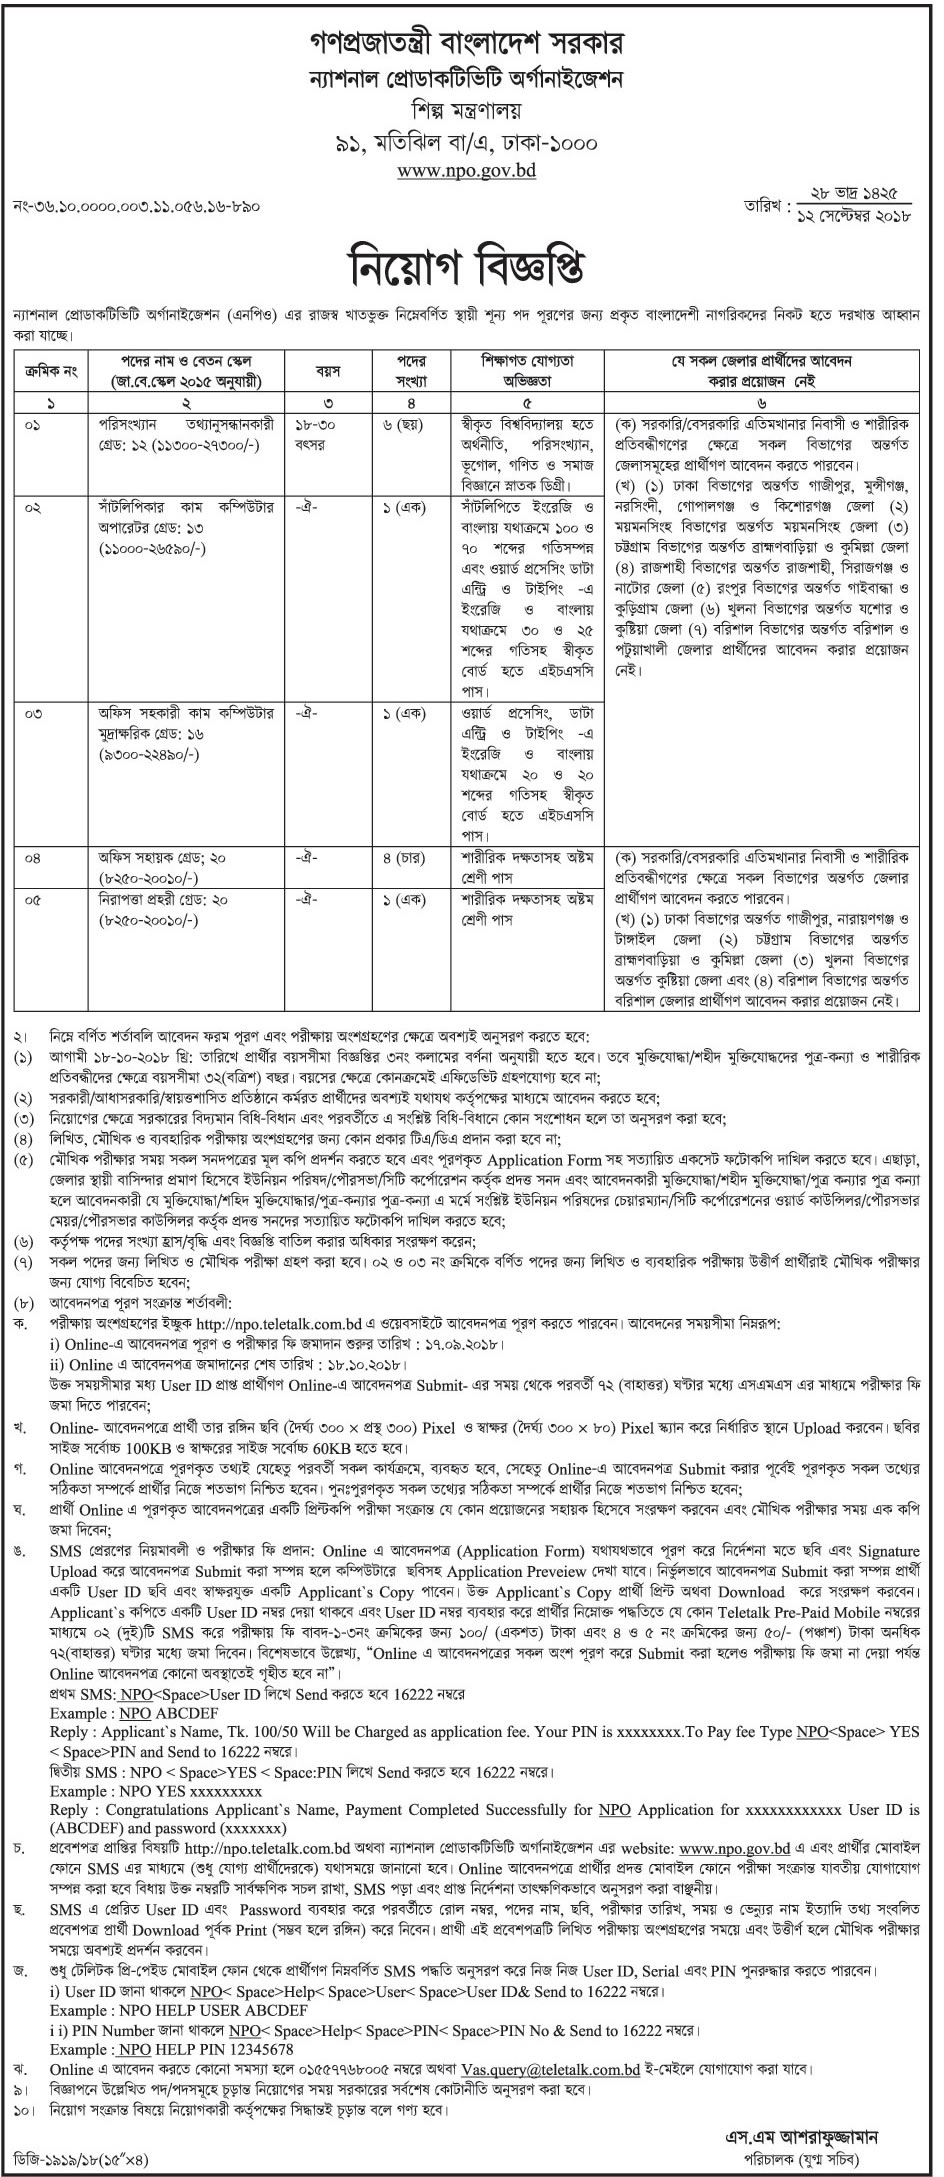 National Productivity Organization (NPO) job circular & Apply Instruction -2018